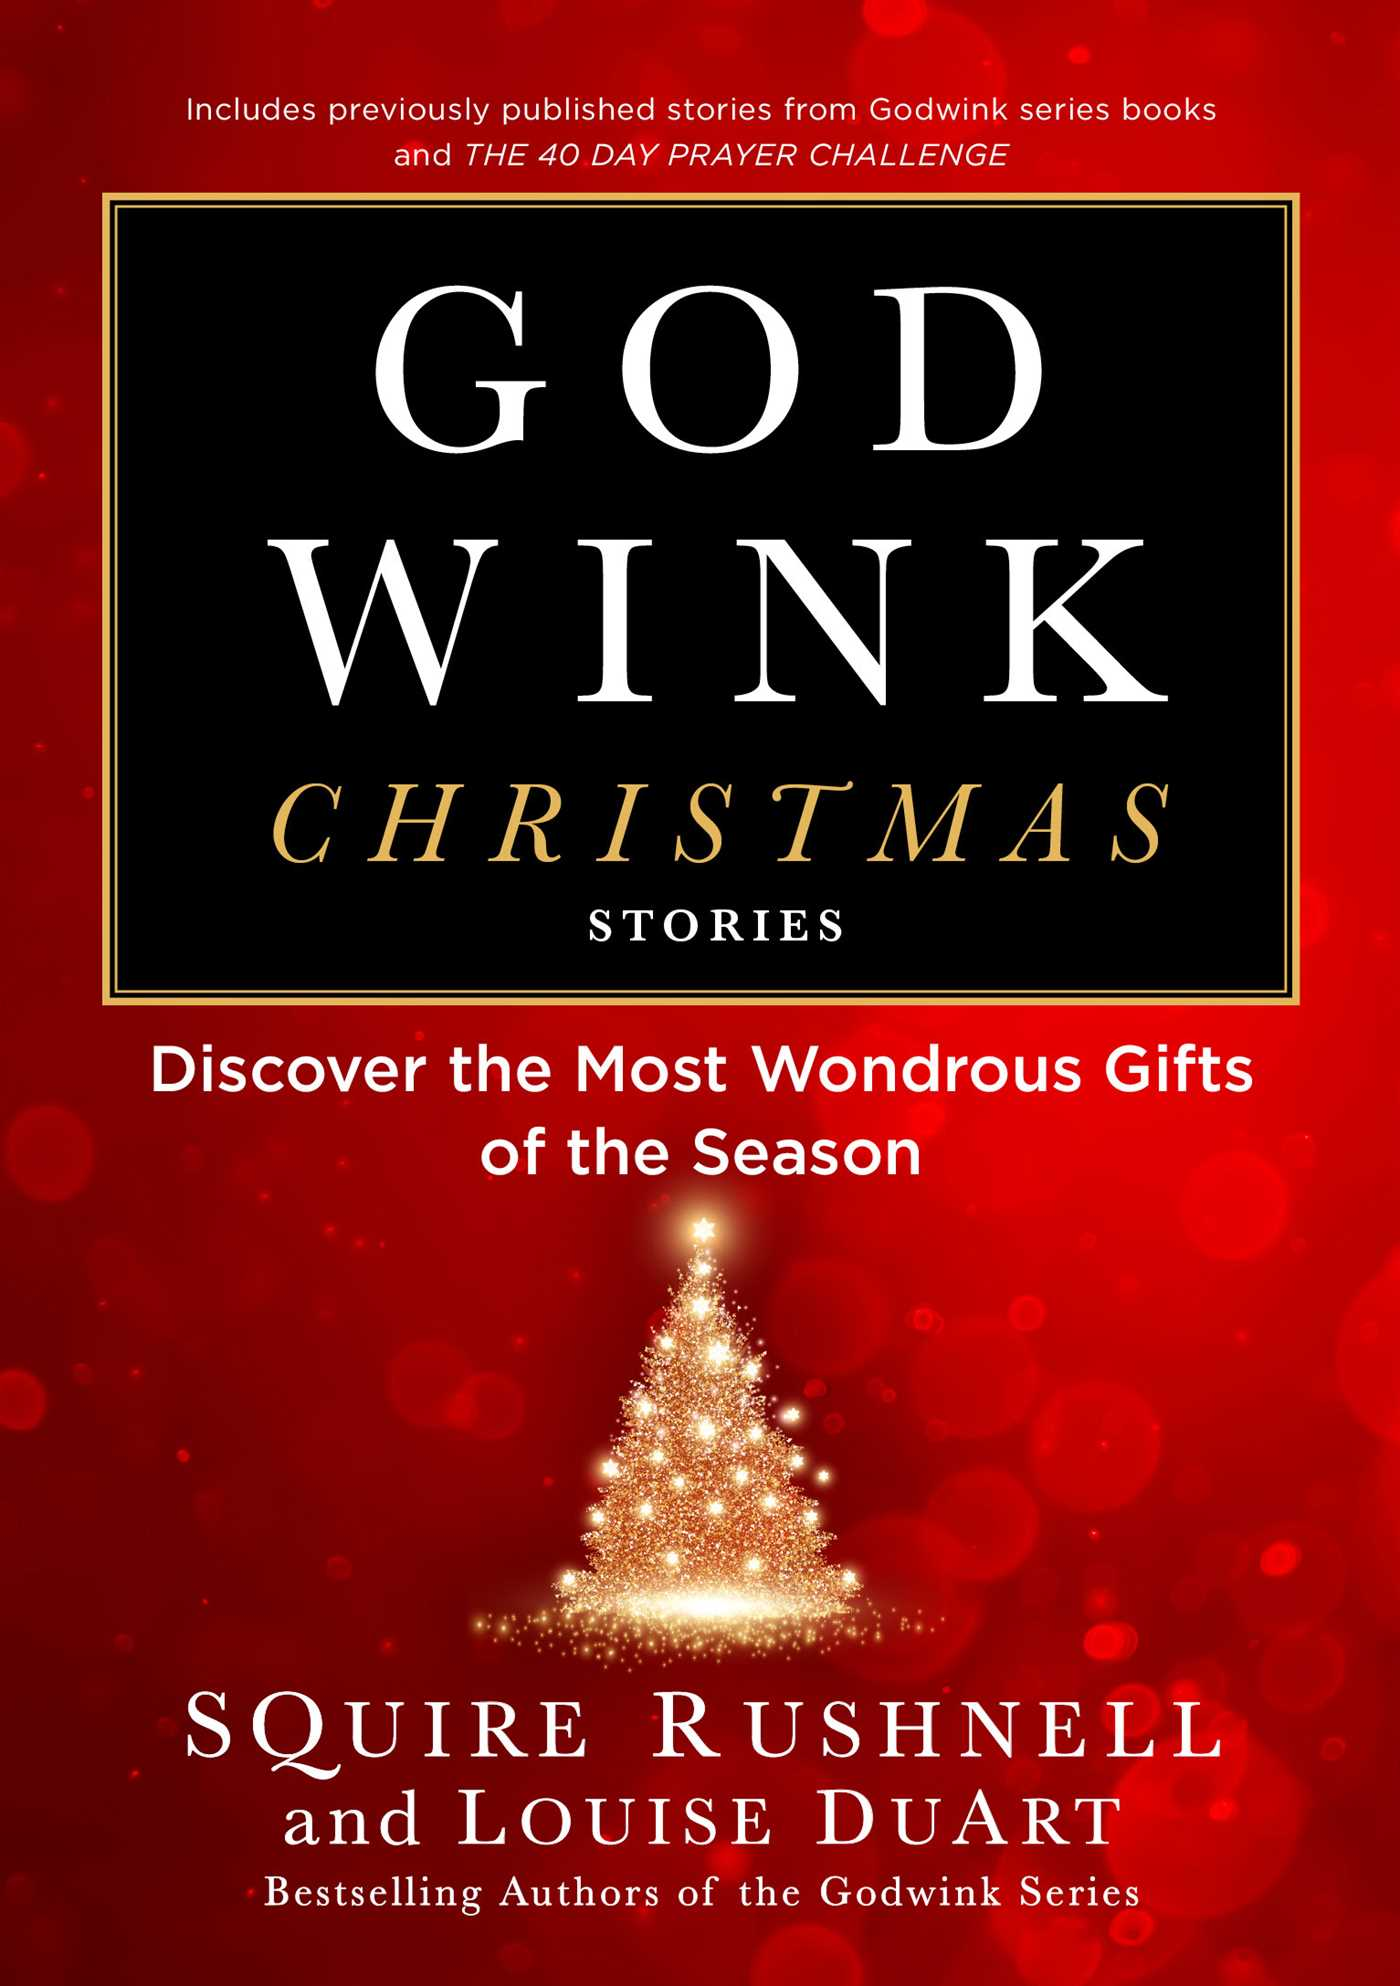 Book Cover Image (jpg): Godwink Christmas Stories